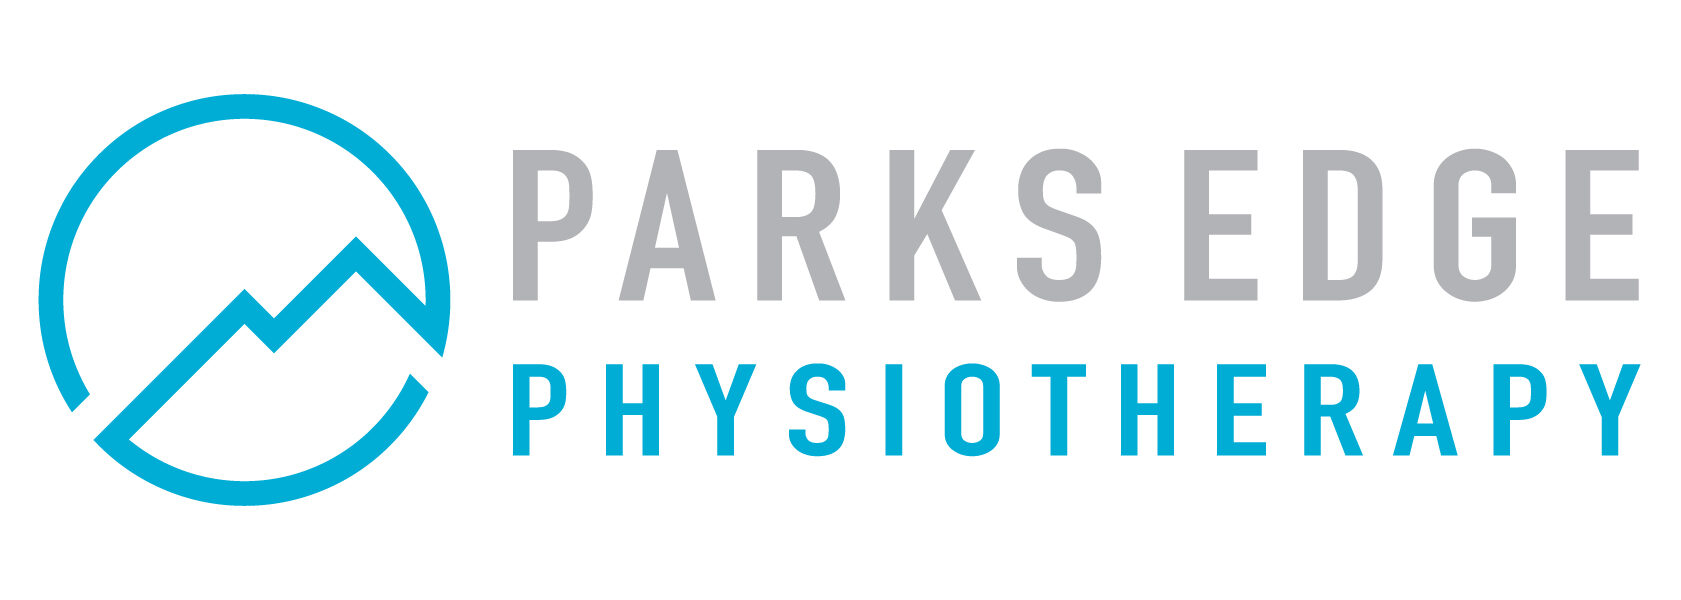 Parks Edge Physiotherapy